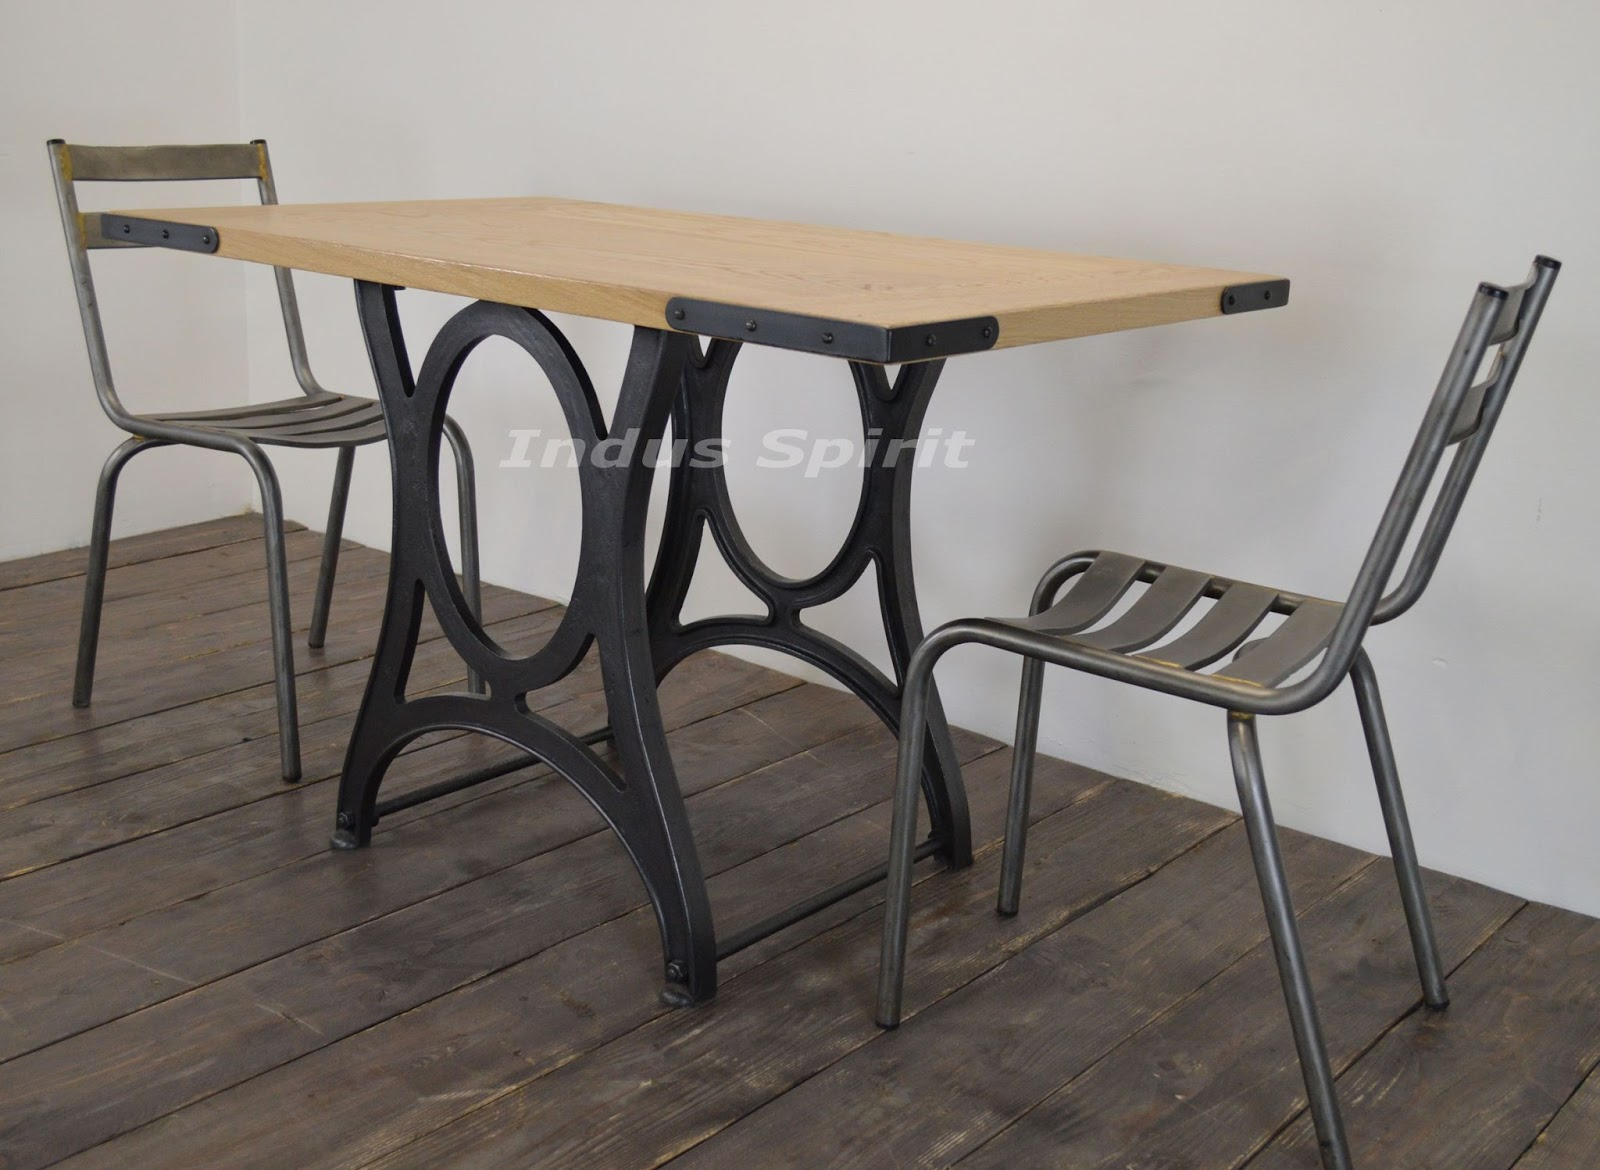 Petite table industrielle for Table industrielle